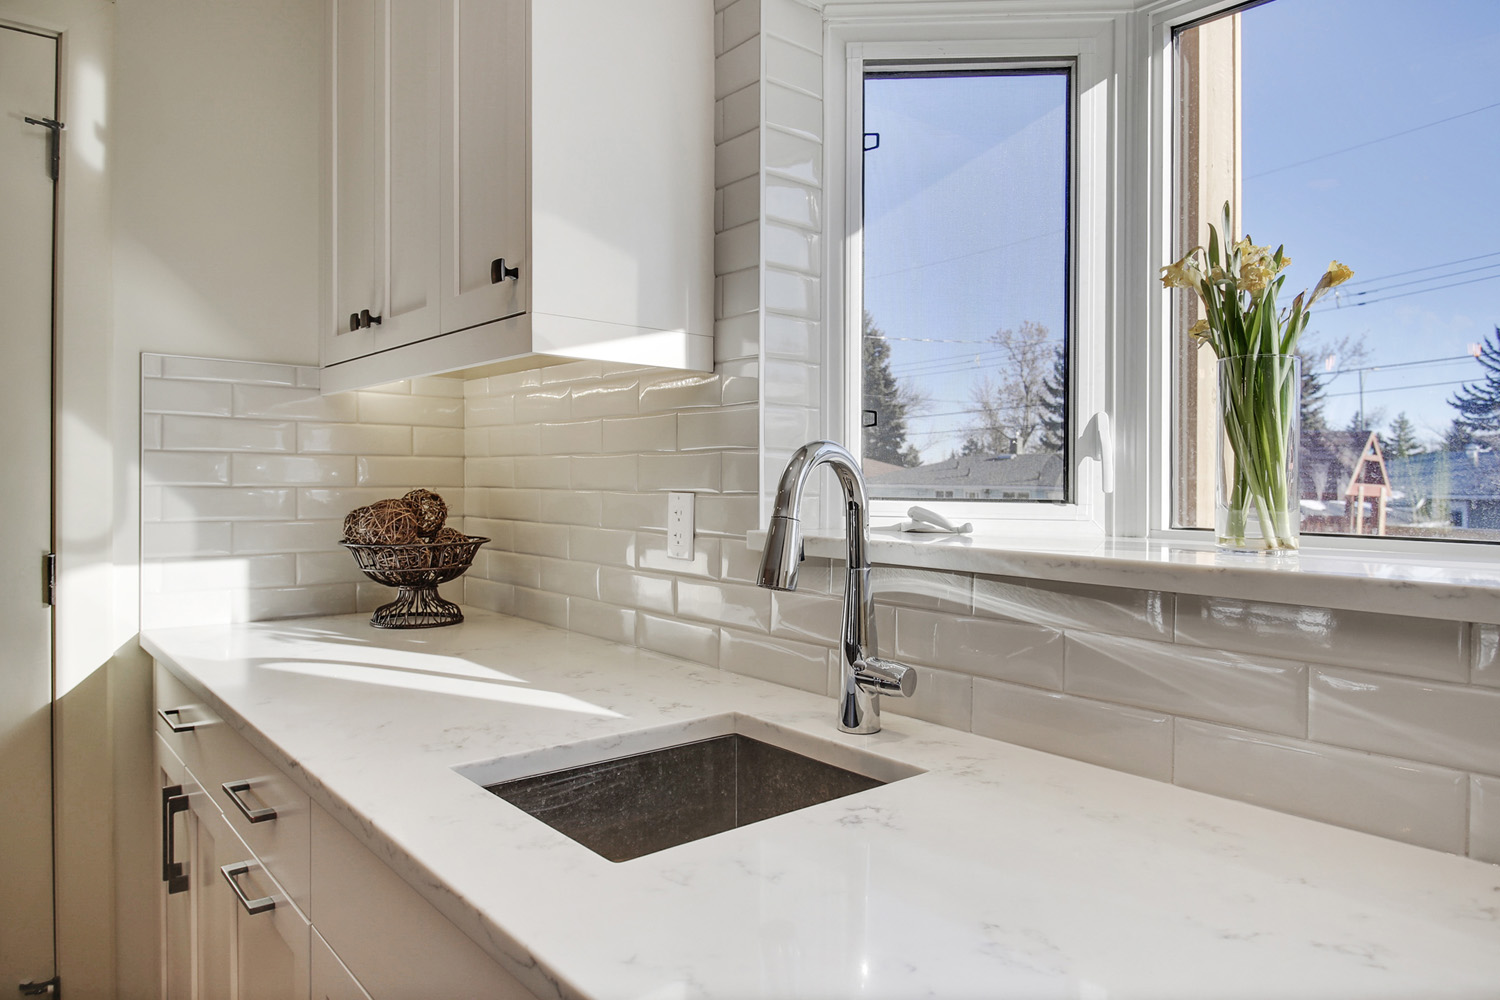 Kitchen Countertop Considerations Corefront